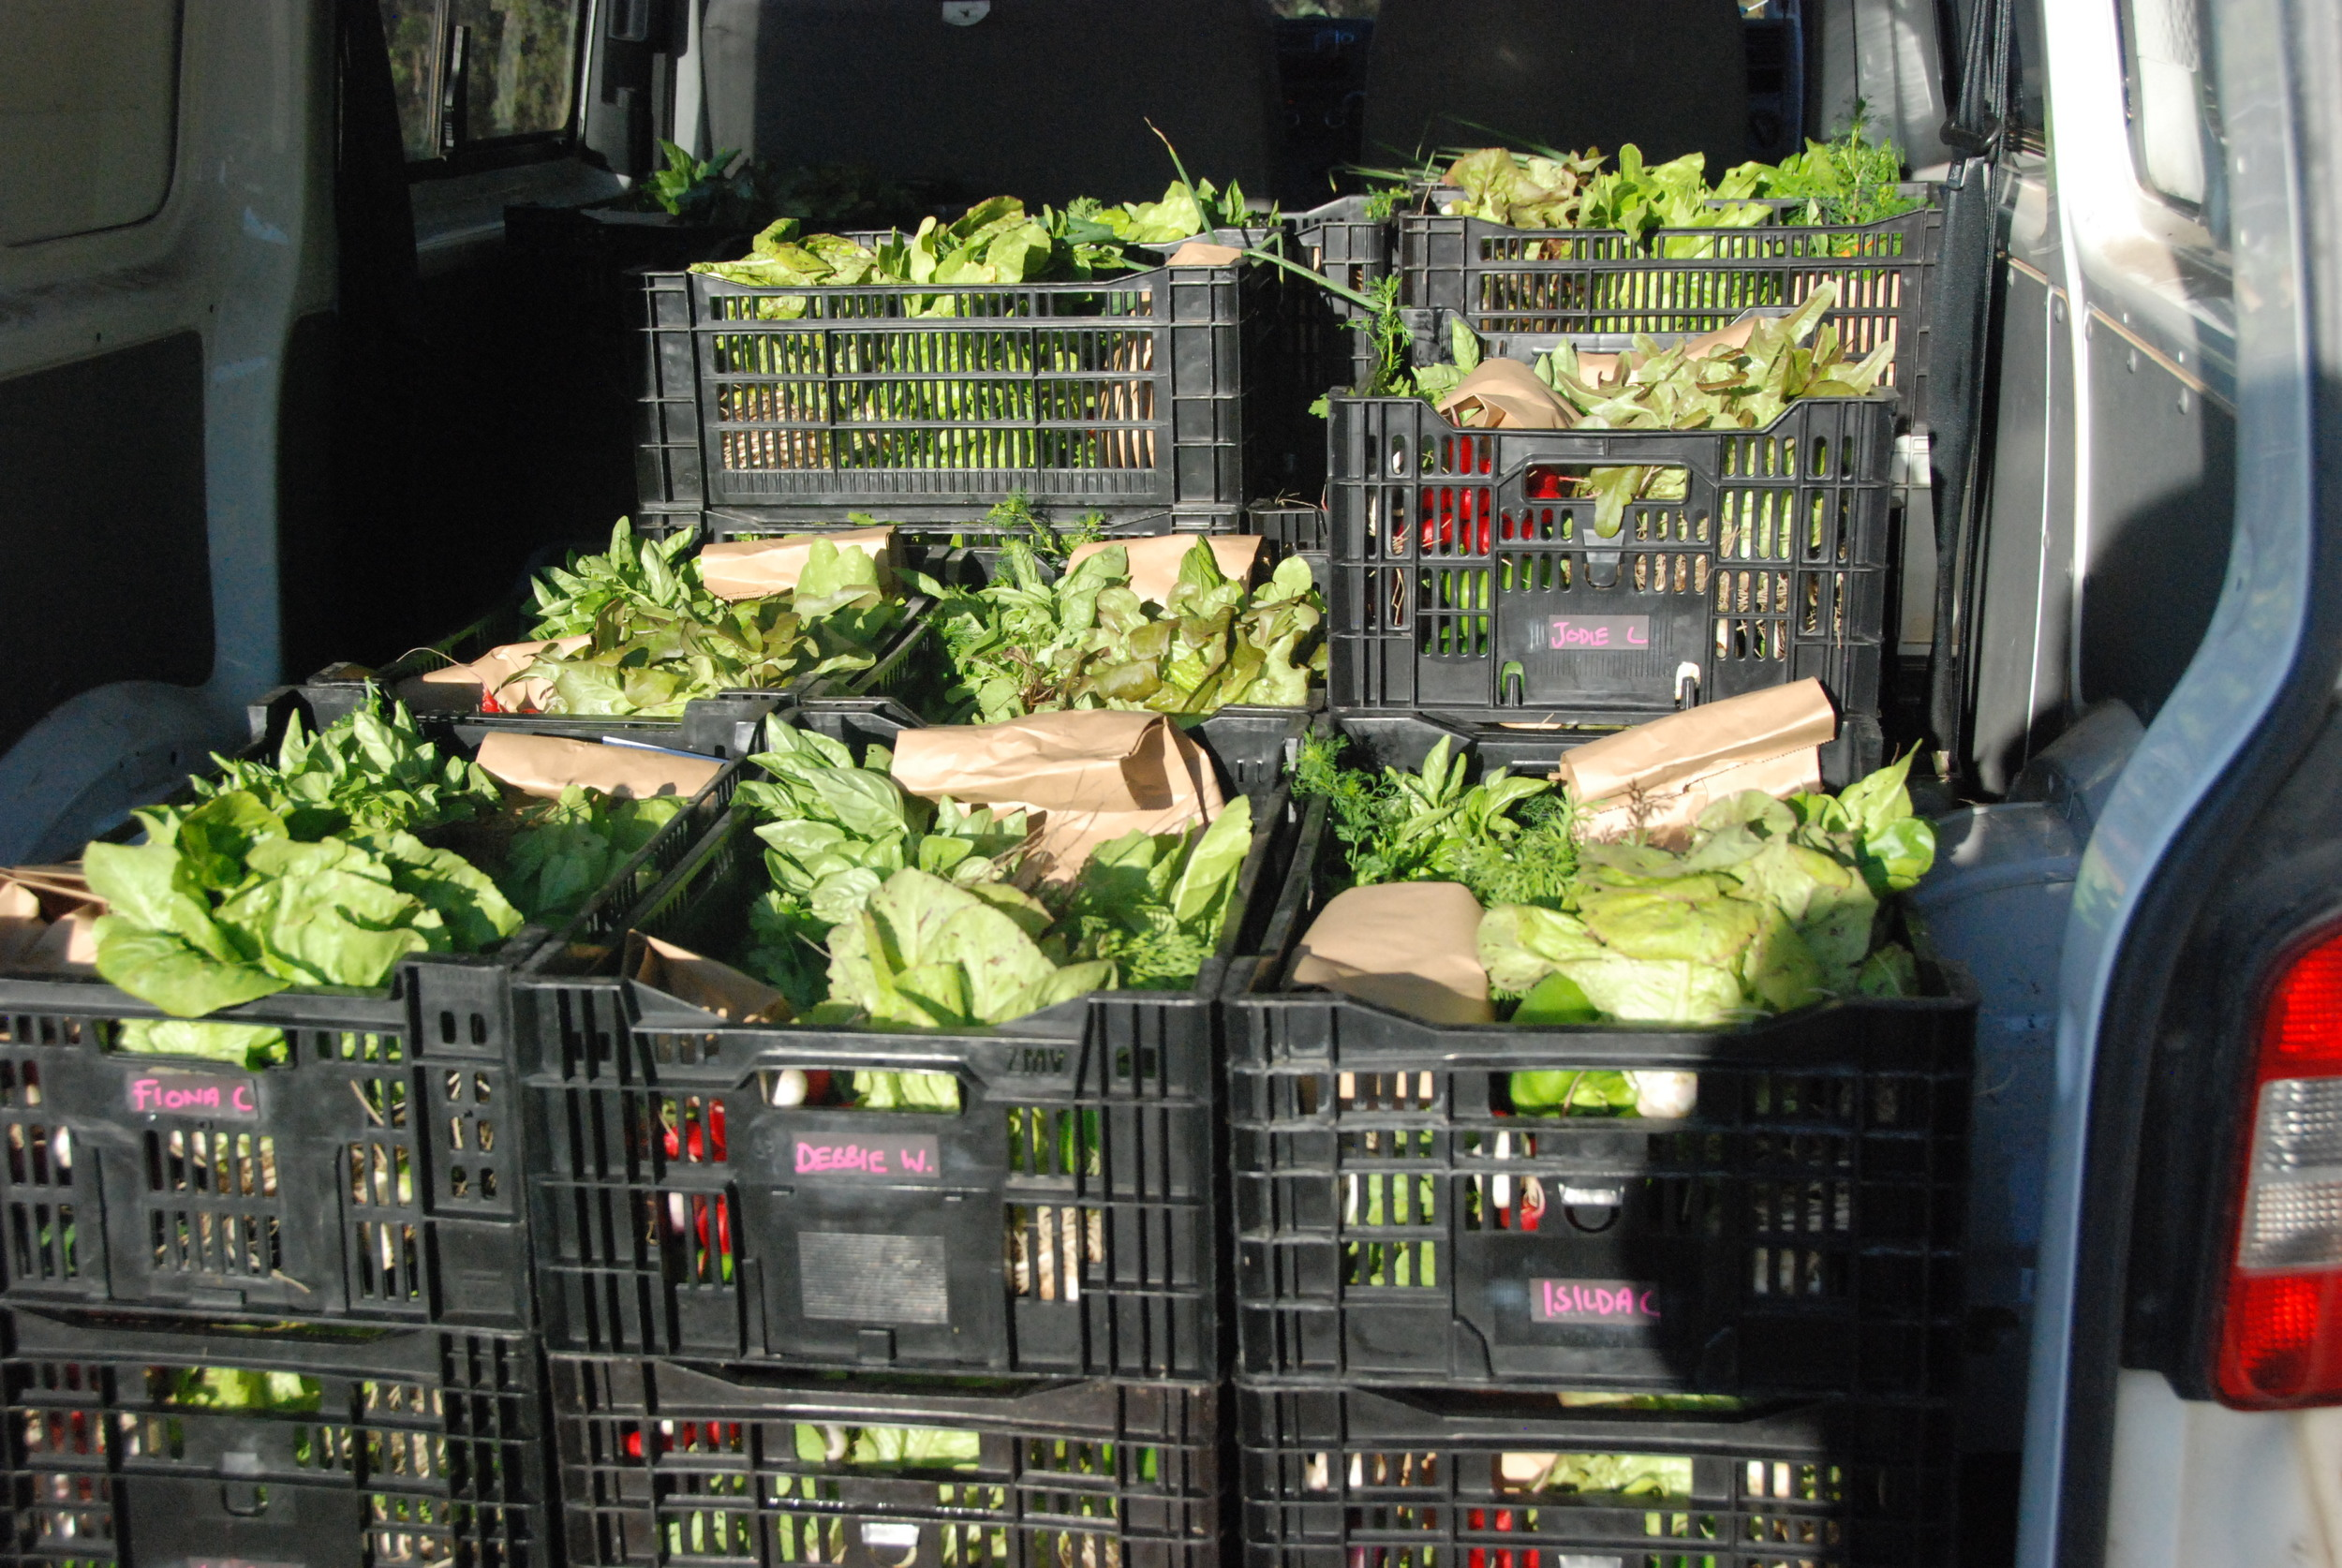 Van loaded for wednesday deliveries...from Mt Eliza to balnarring to portsea